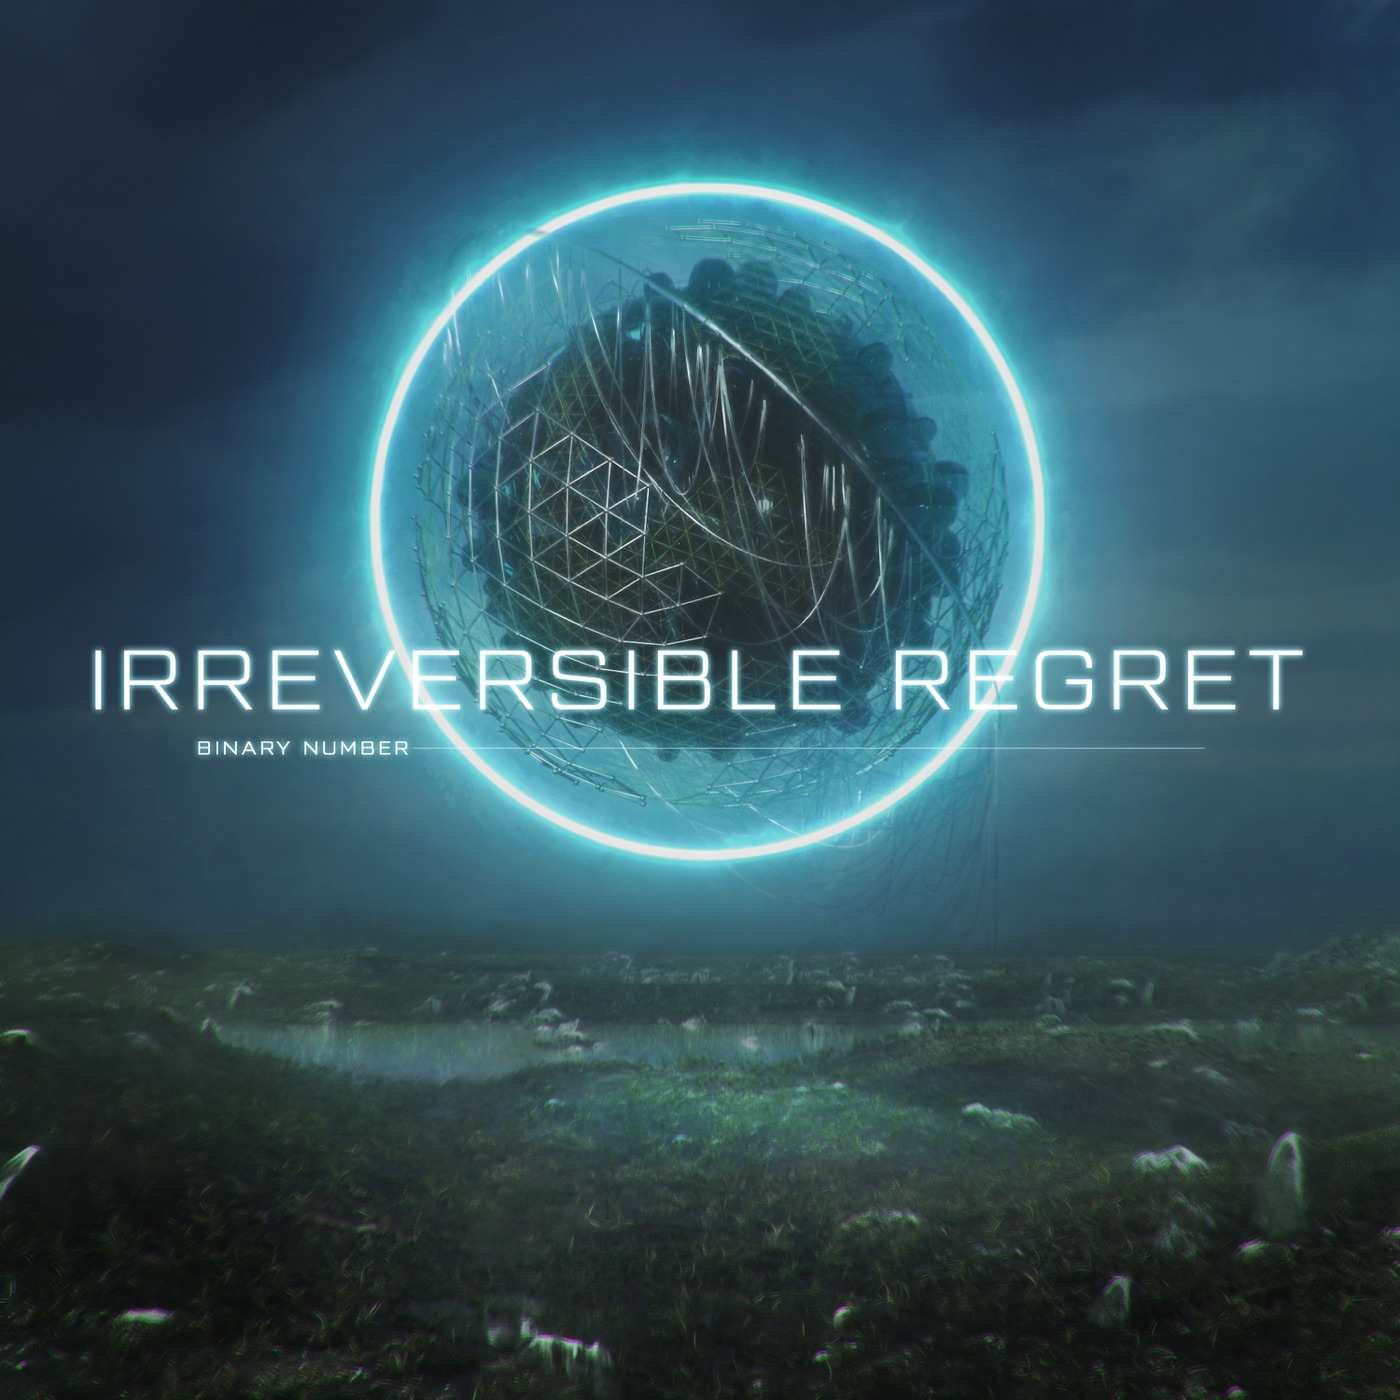 Binary Number - Irreversible Regret [single] (2020)